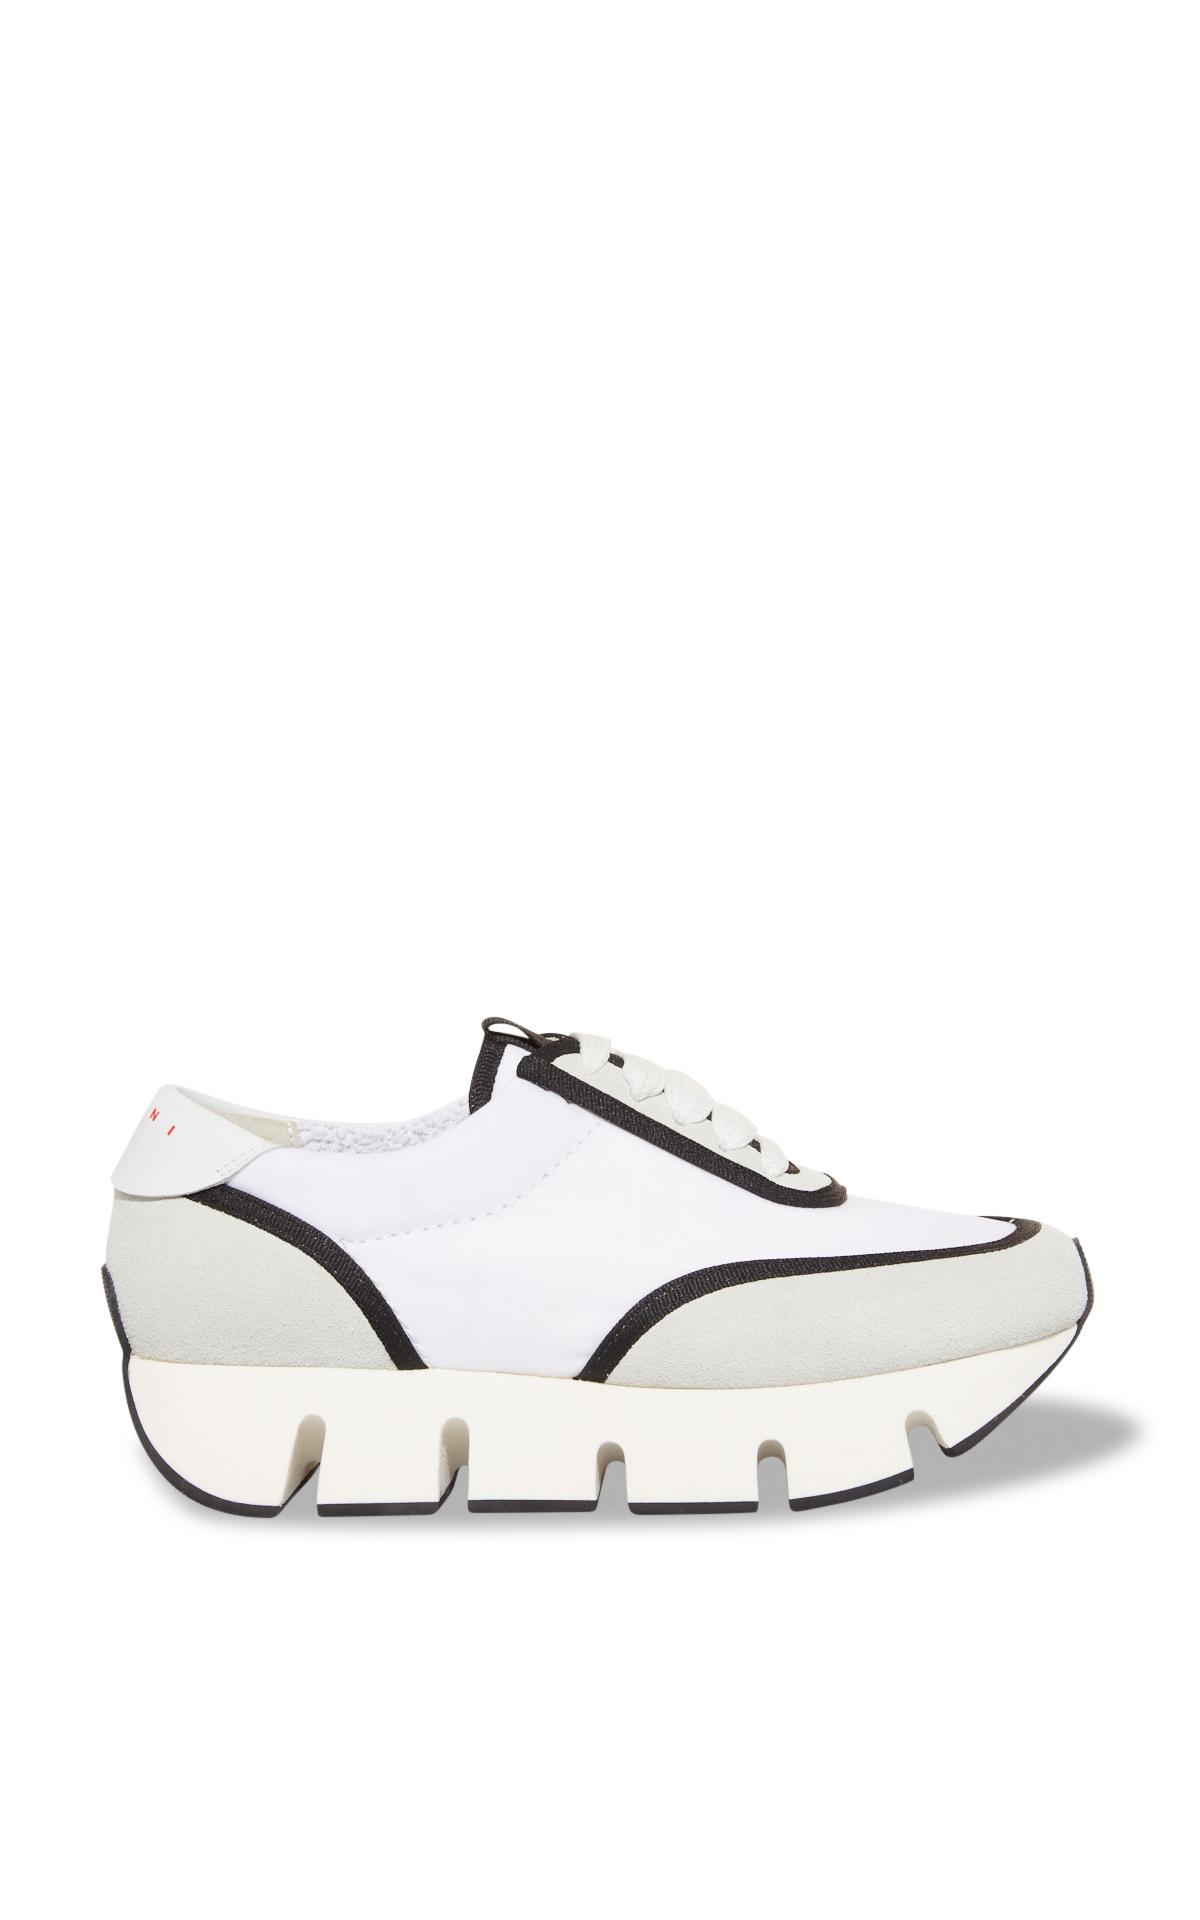 Marni Grey and white sneakers with white soles La Vallée Village